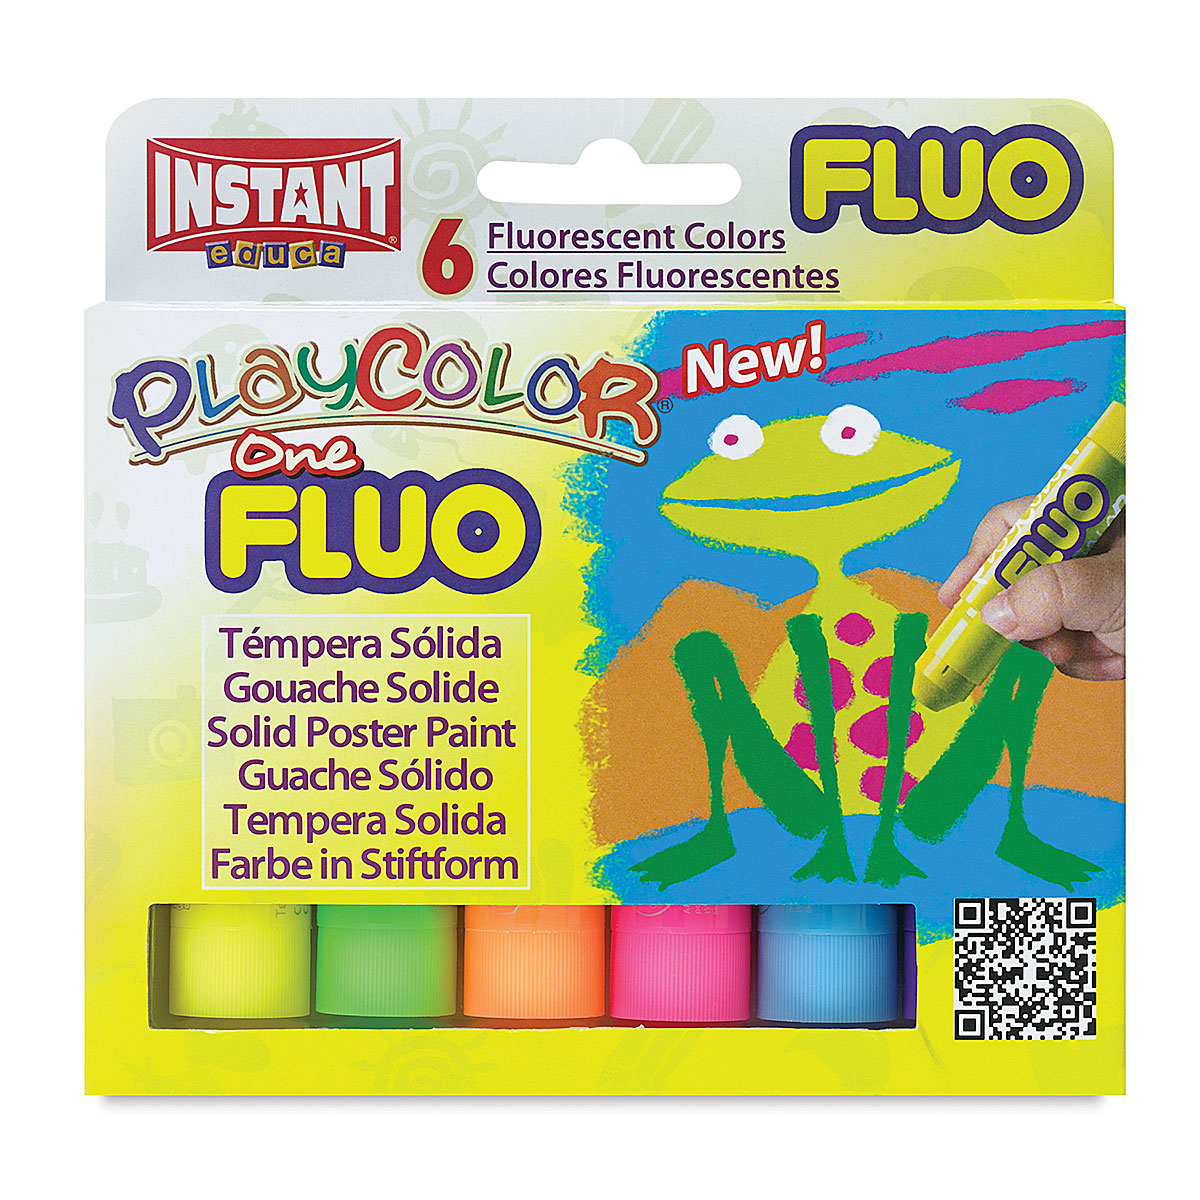 Playcolor - Fluorescent Colors, Set of 6, Standard Size